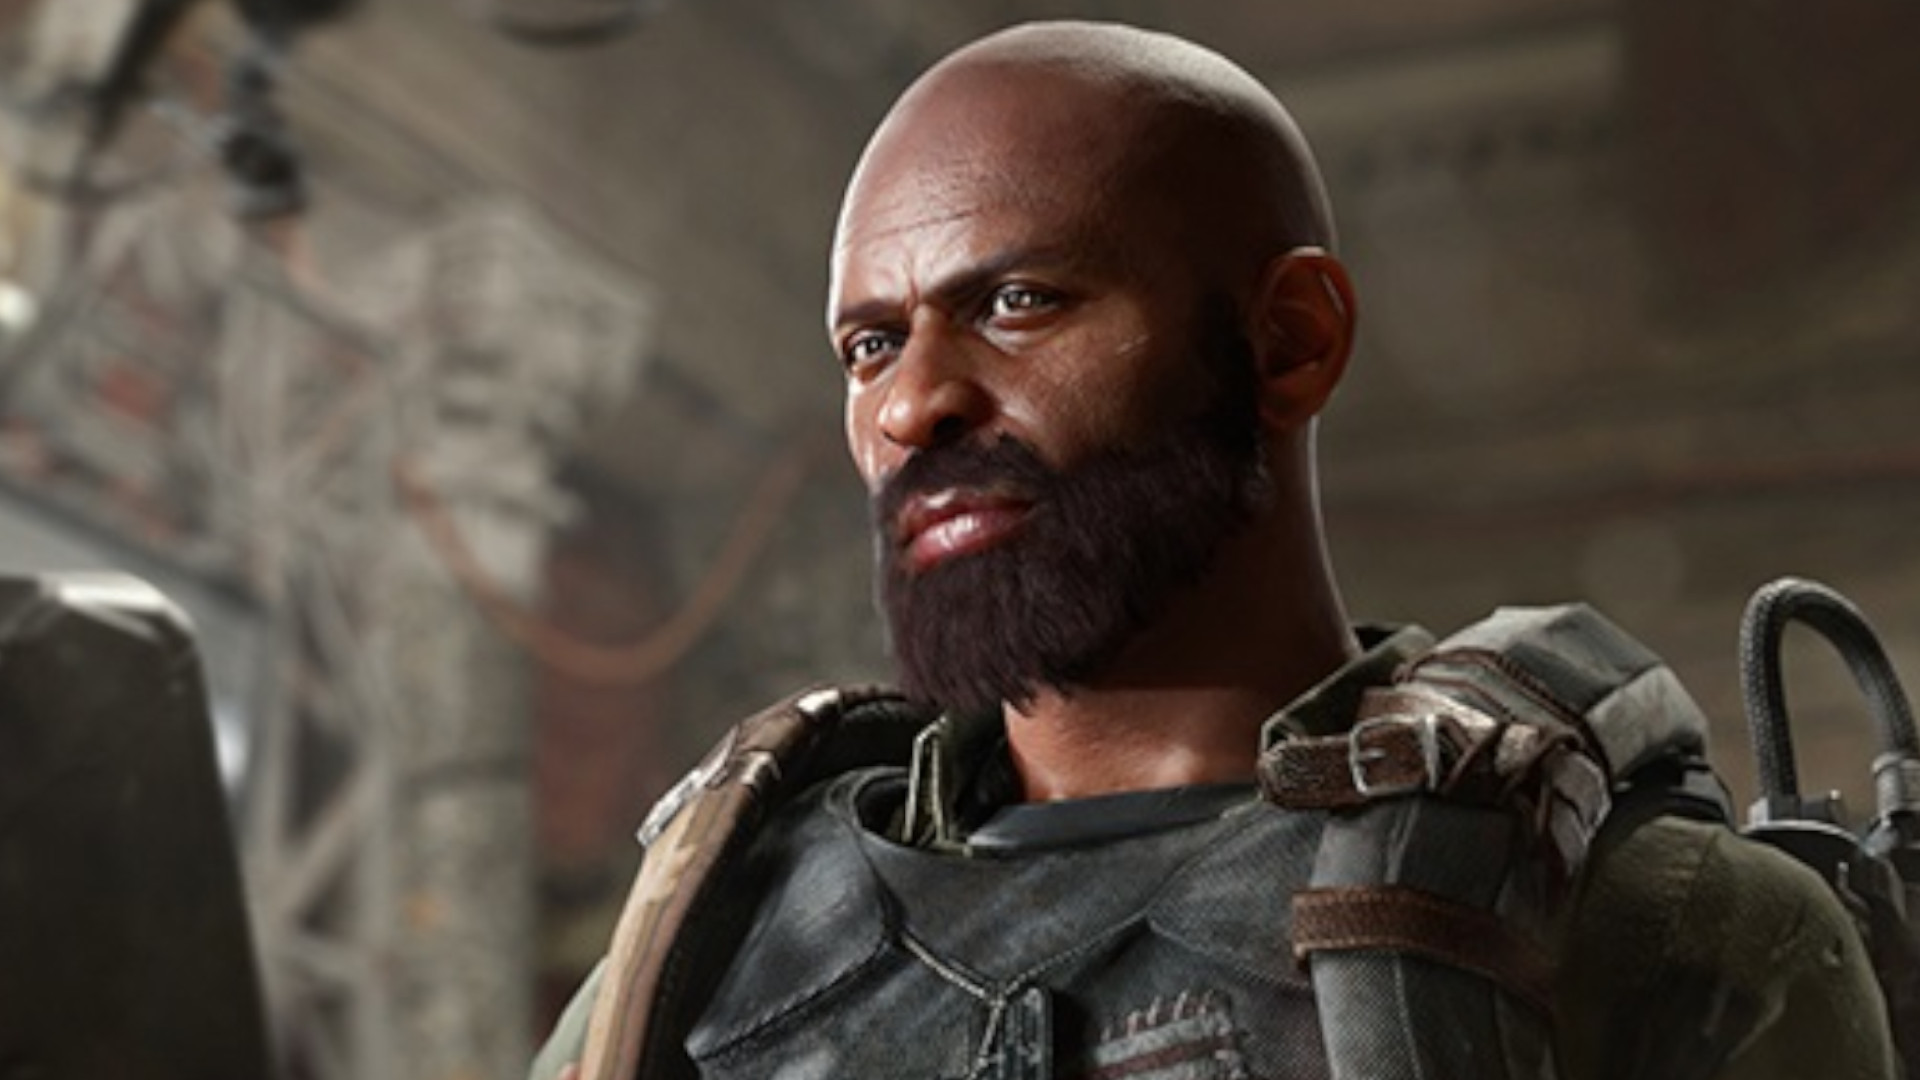 Division 2 is getting a specialization revamp, but the new season is delayed to 2022